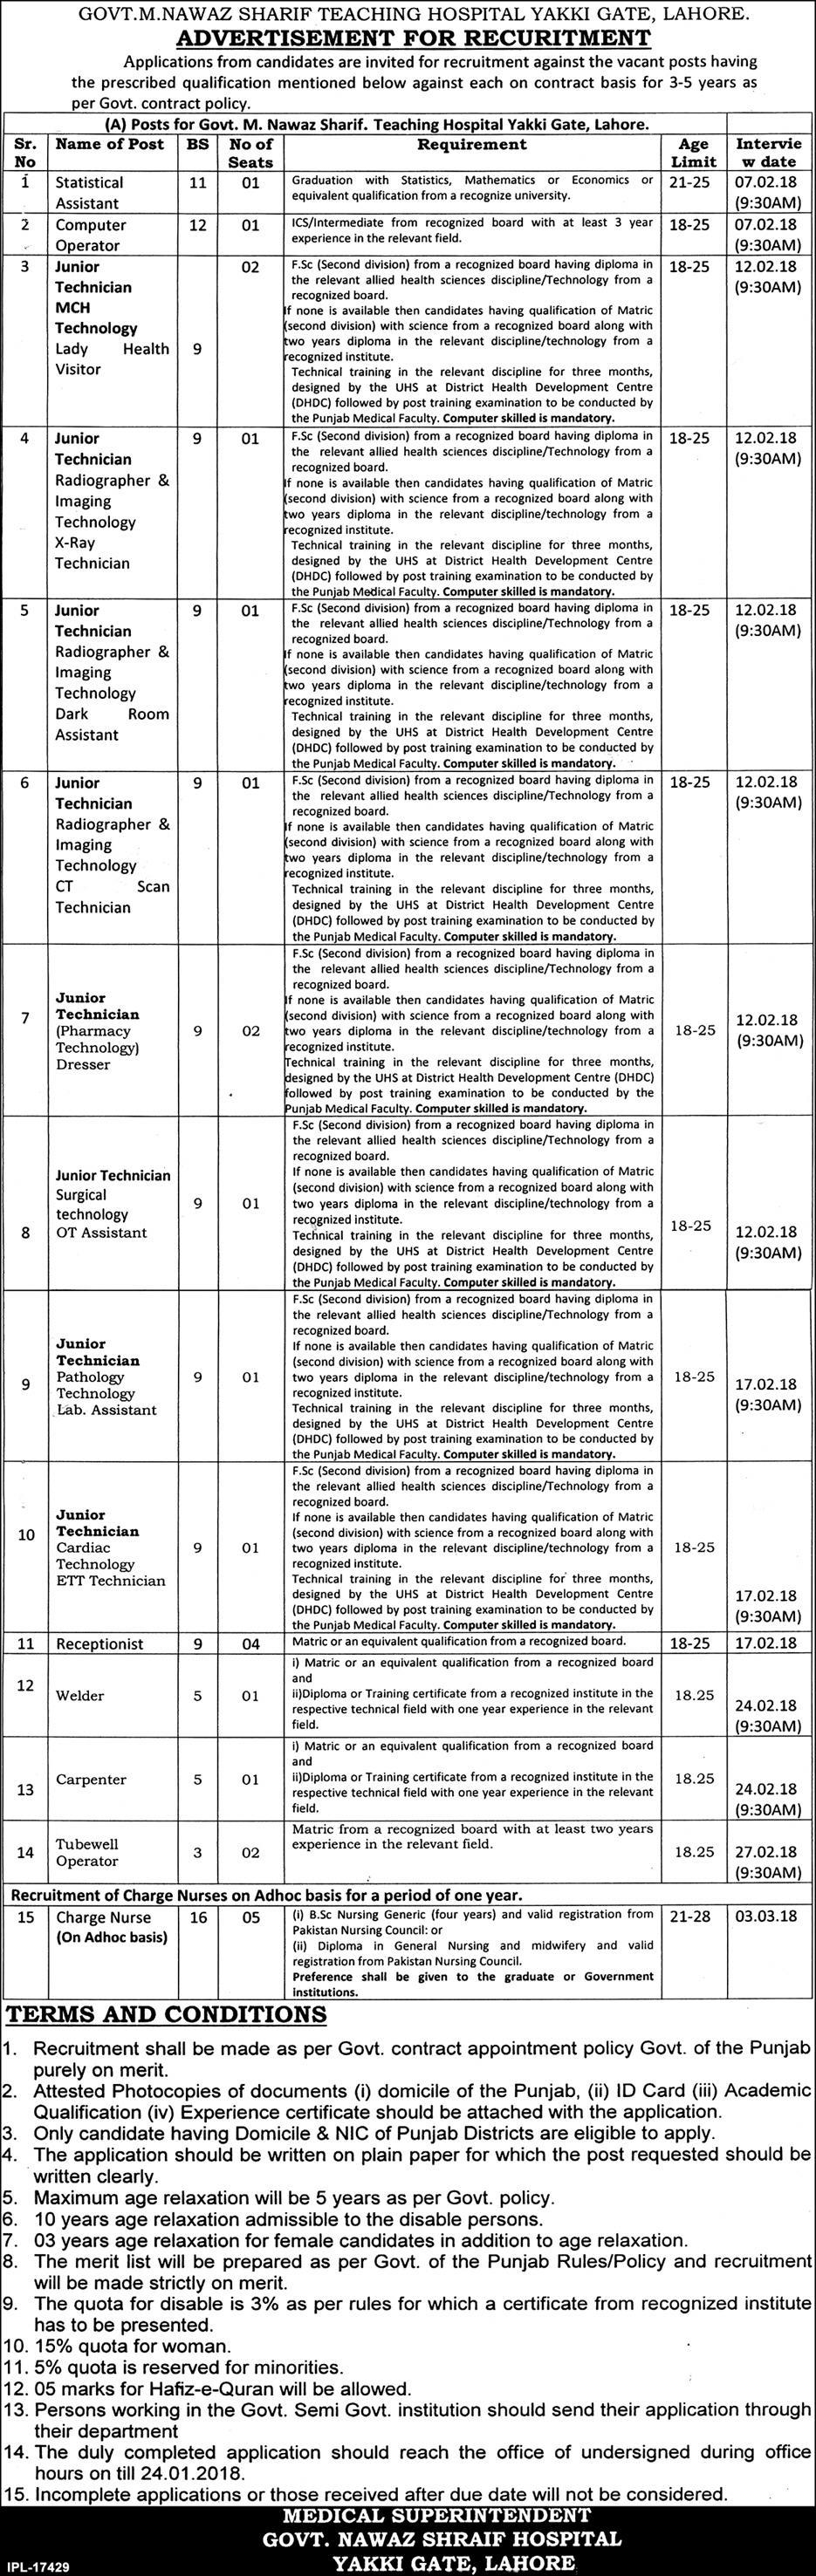 Jobs In Govt Nawaz Sharif Hospital 02 Jan 2018